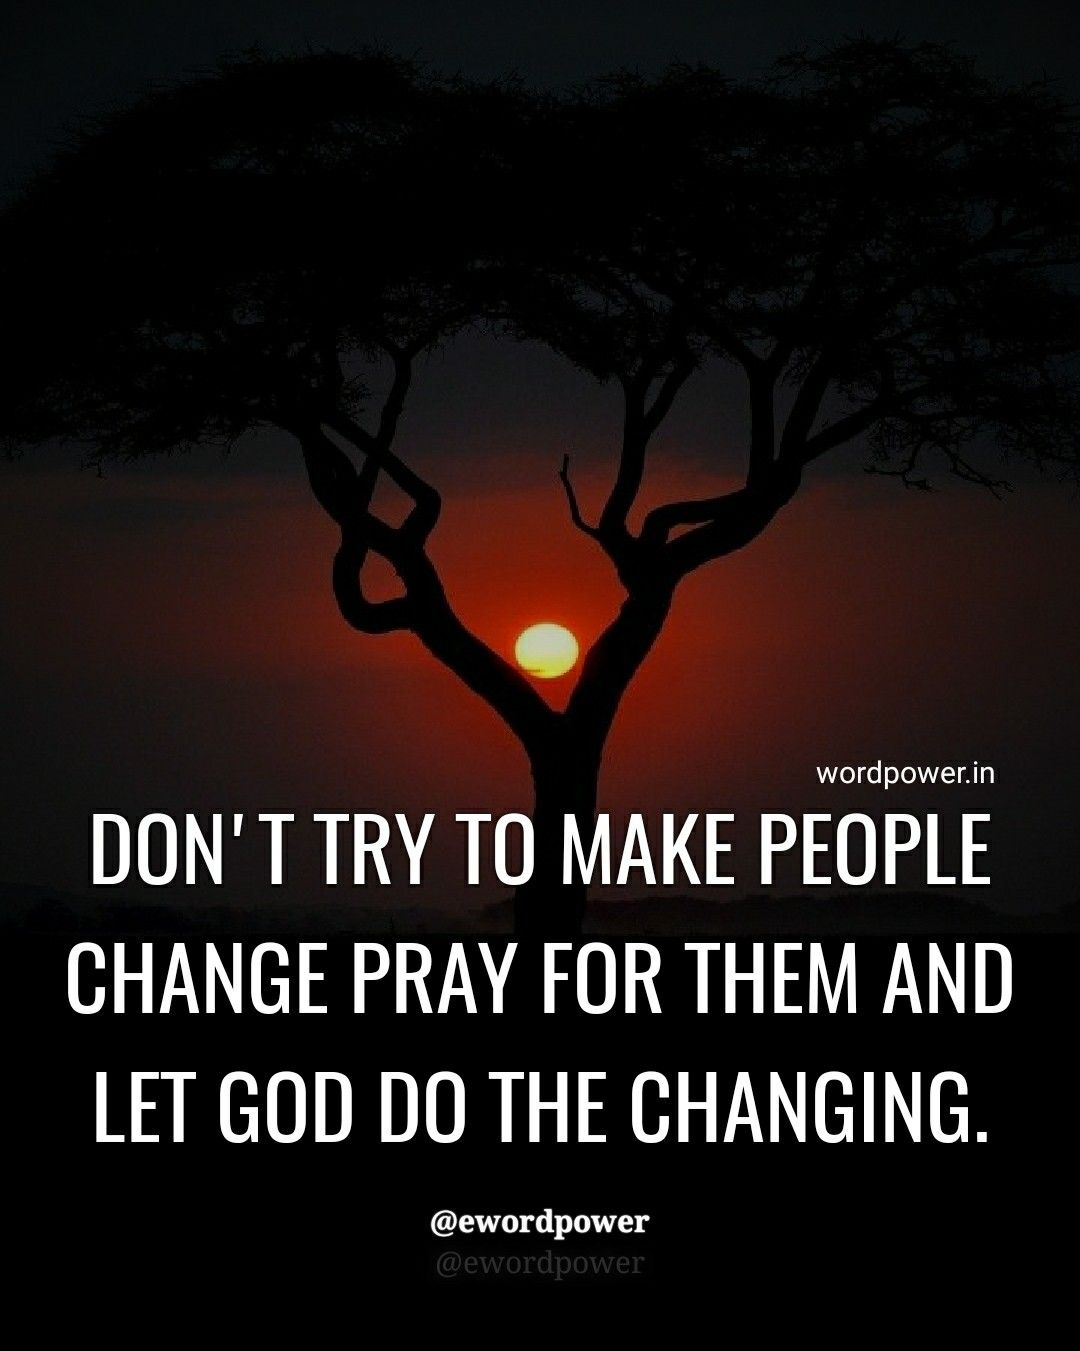 Don't try to make people change, Pray for them and let God